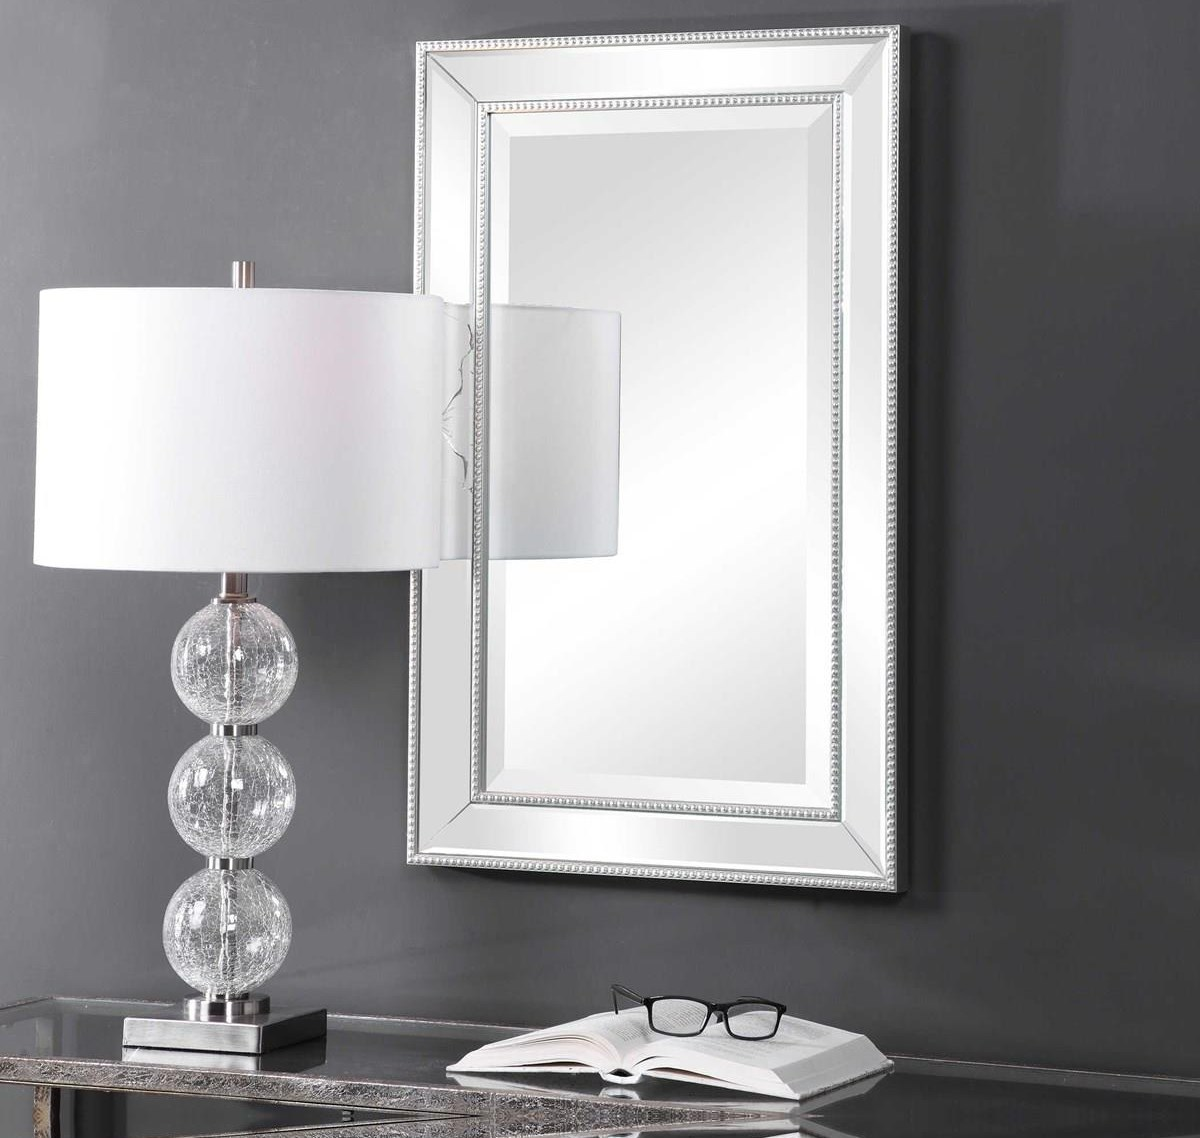 Mirrors MADELYN WALL MIRROR by Unique at Walker's Furniture